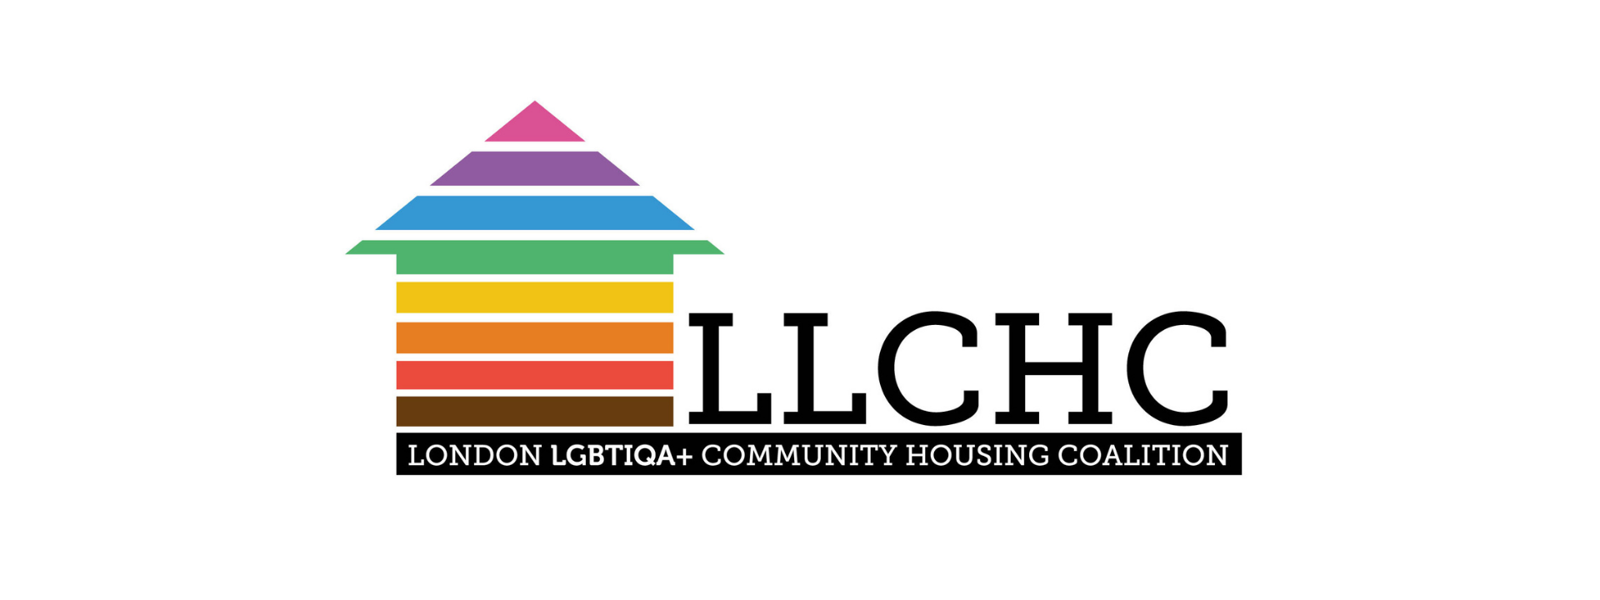 London LGBTIQA+ Community Housing Coalition